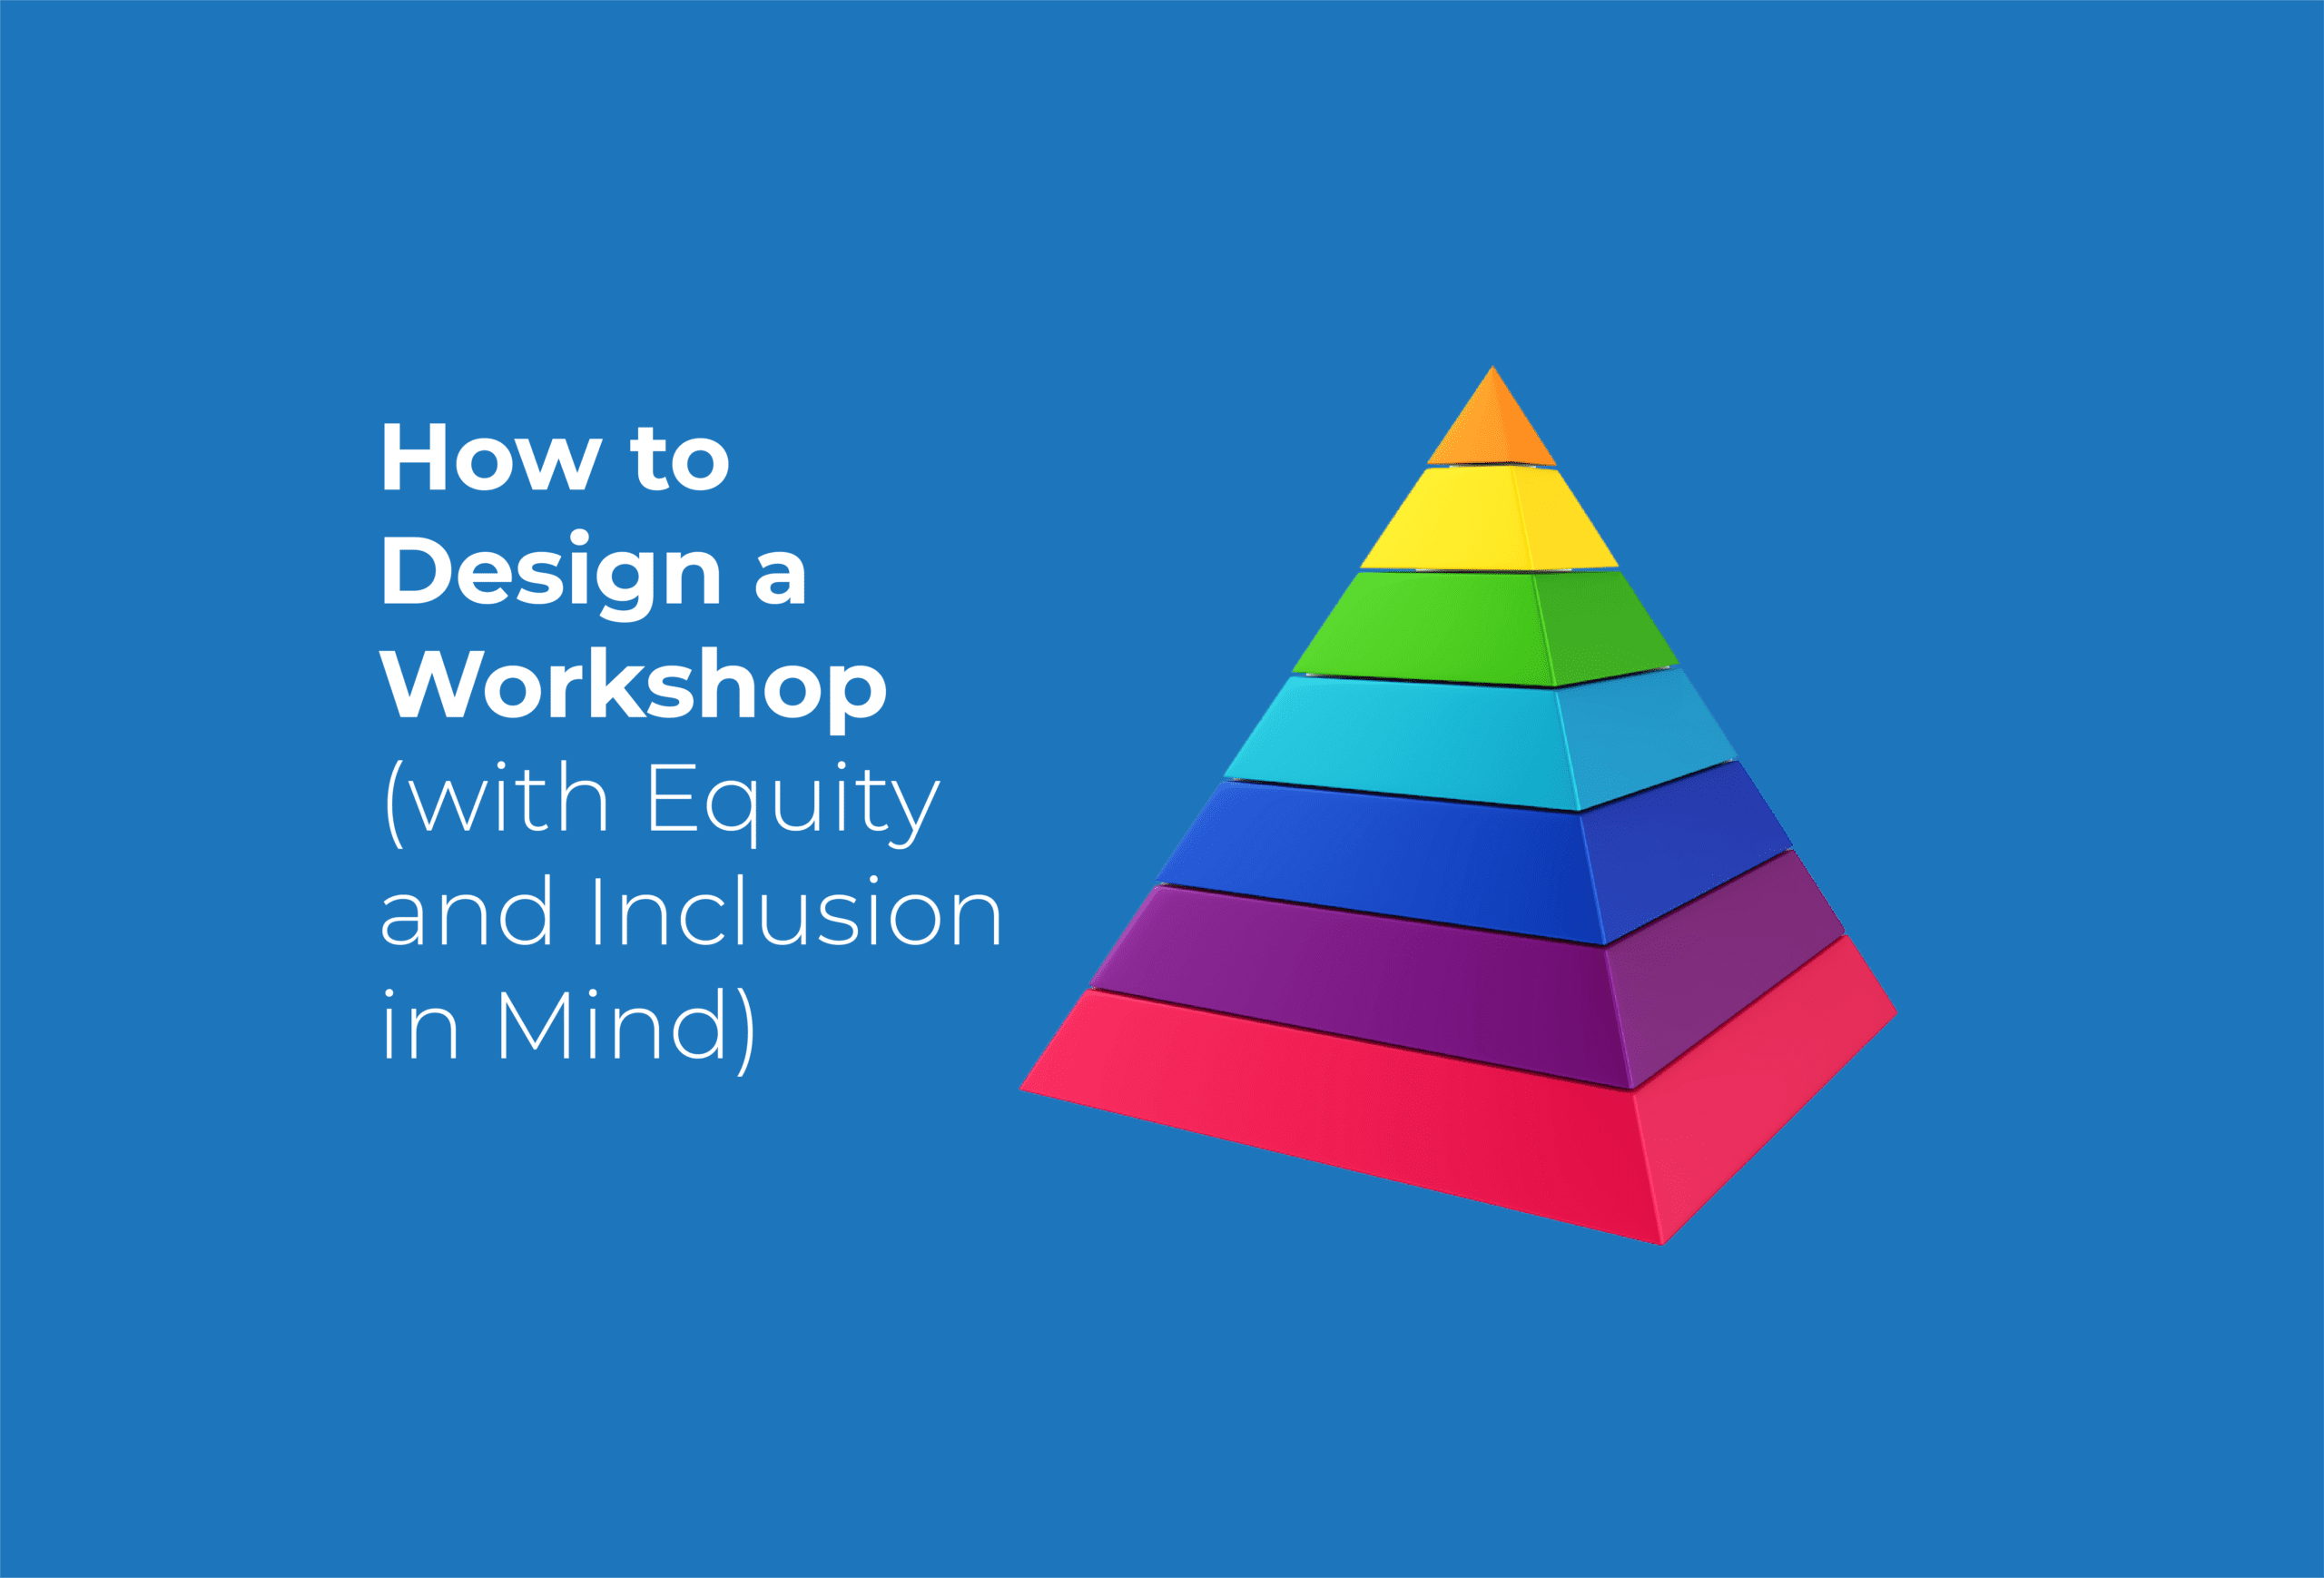 How to Design a Workshop with Equity and Inclusion in Mind